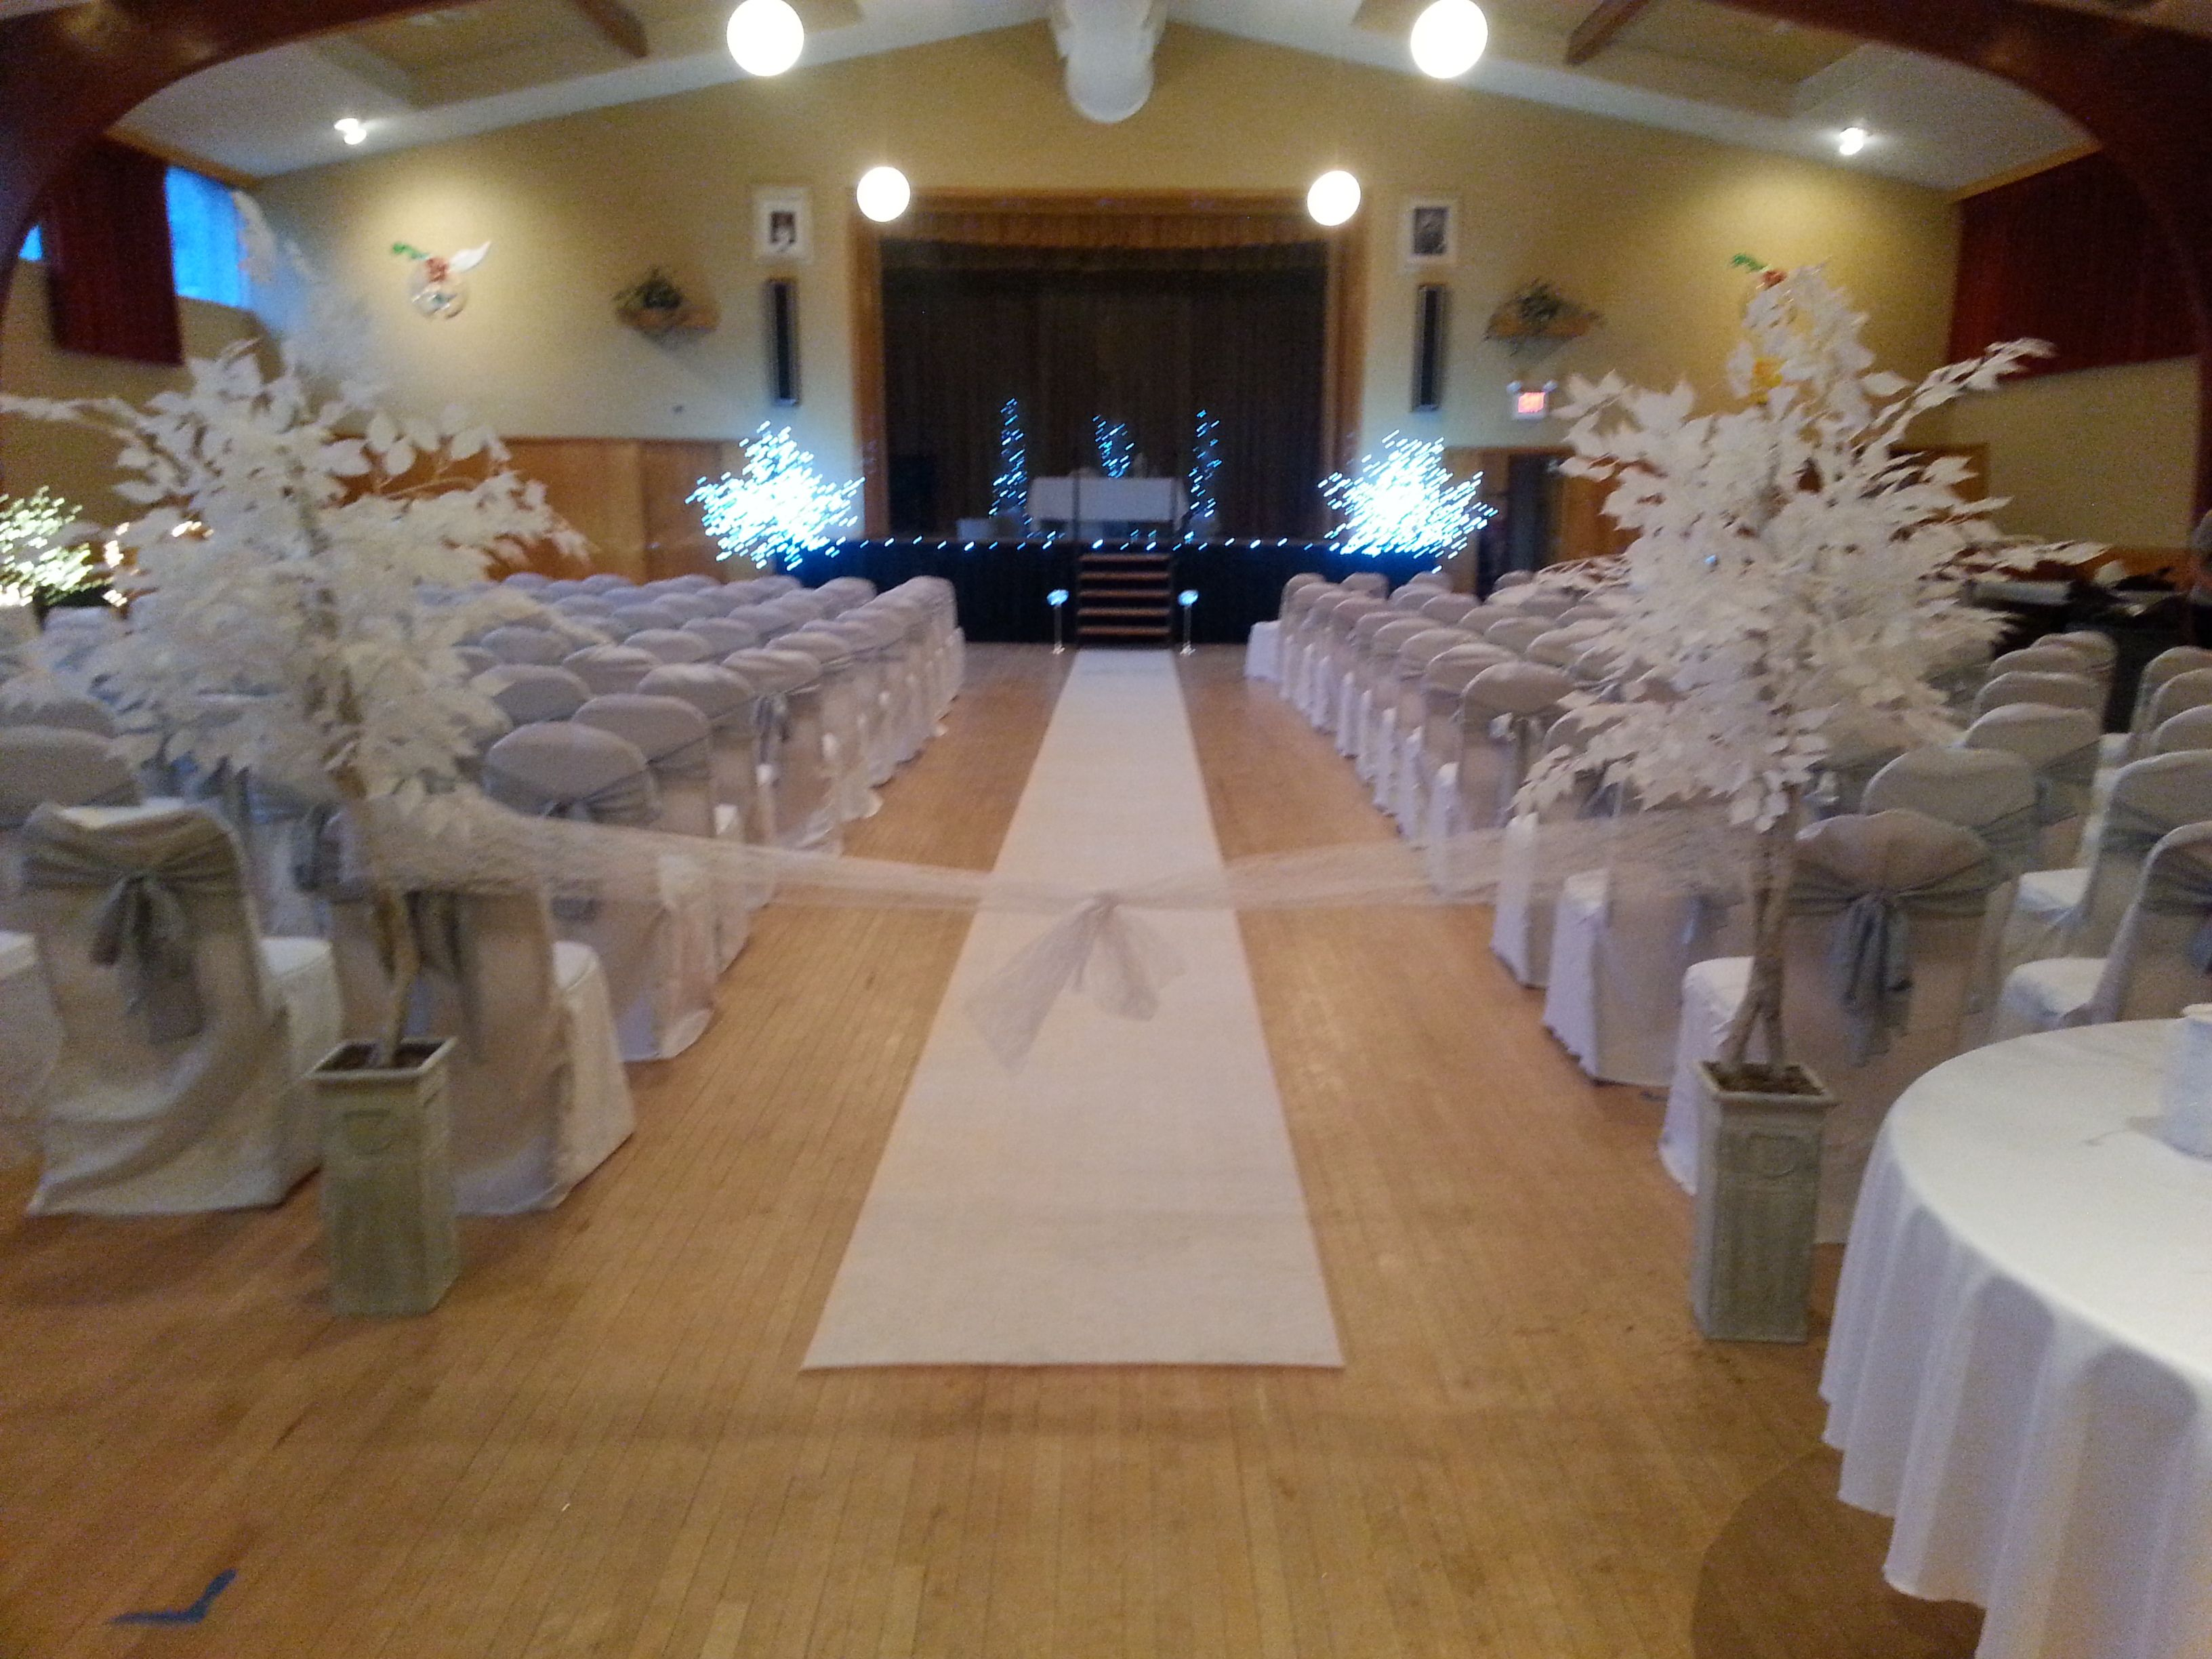 Stunning Decorations For Wedding Held In Wa Shriners Upper Hall